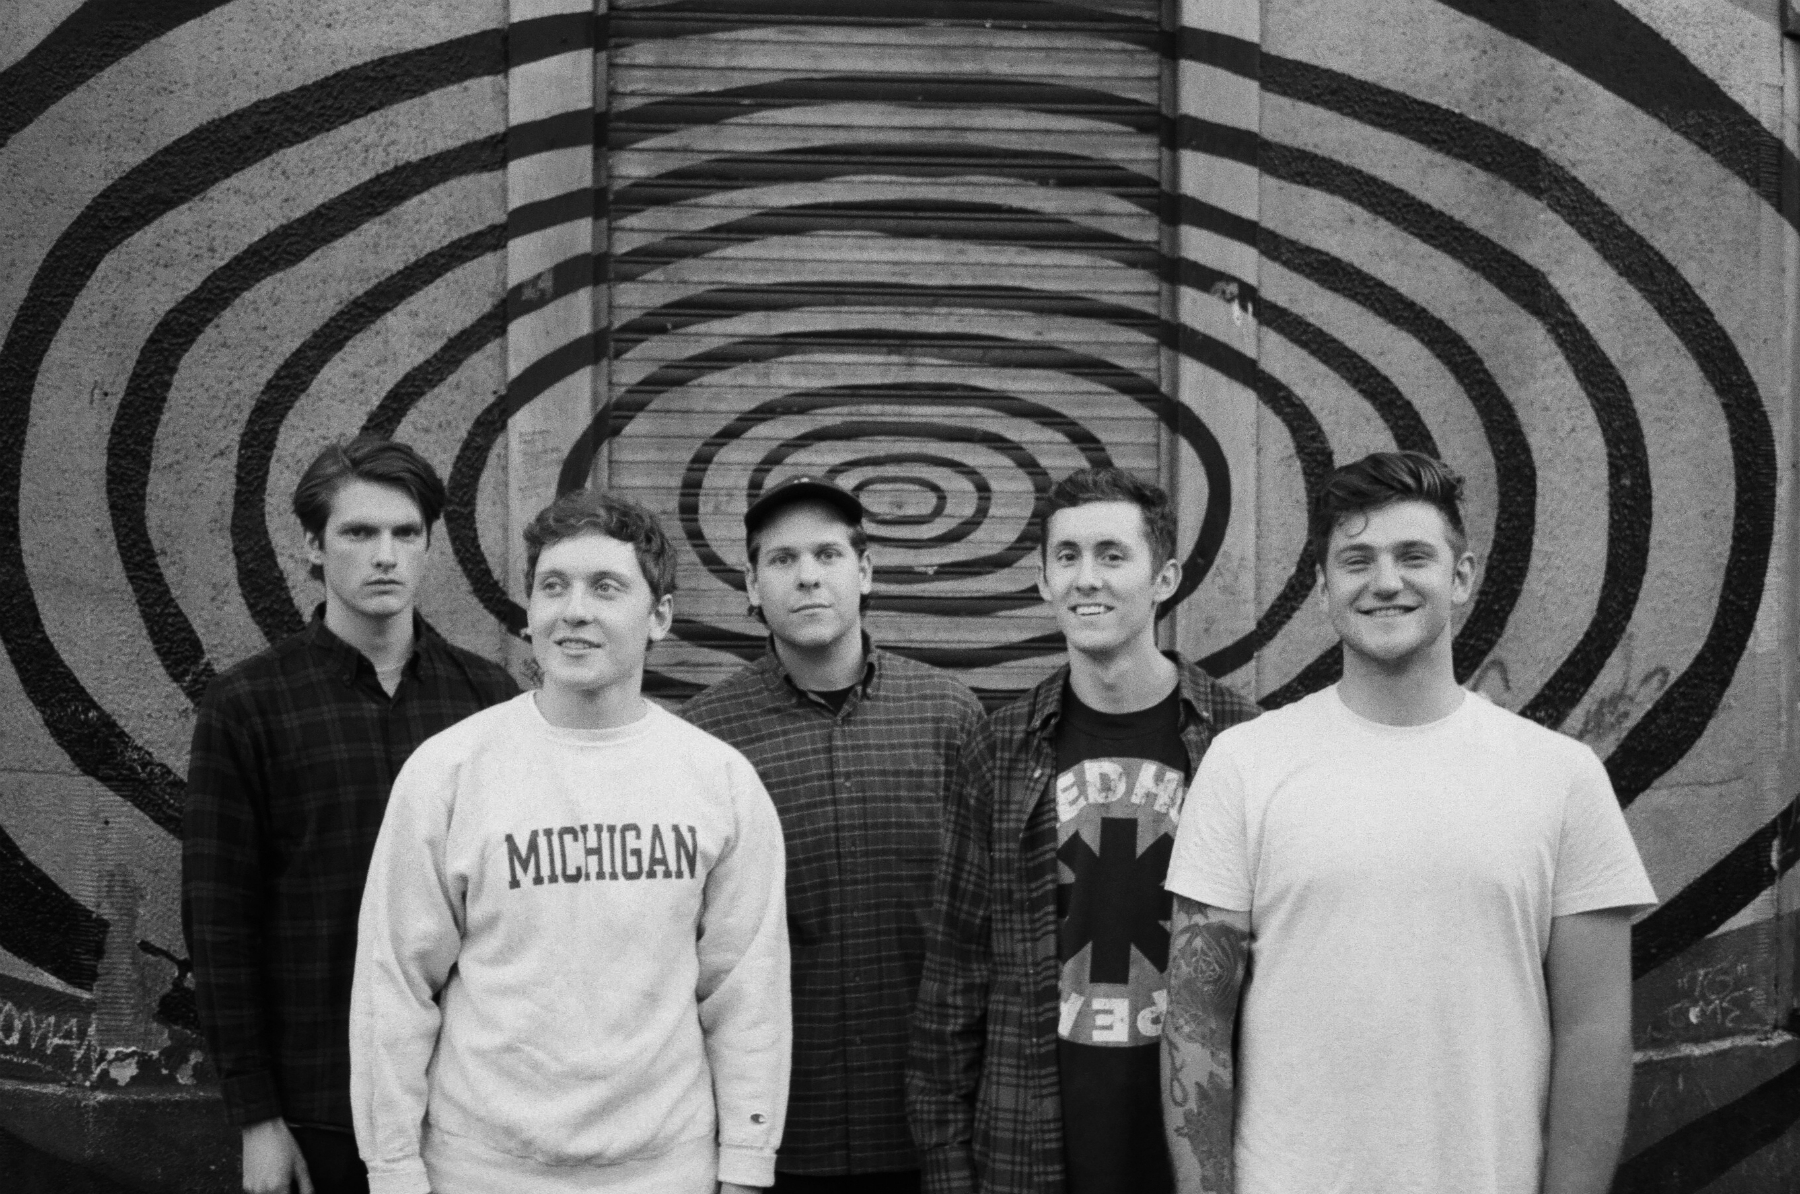 Basement share video for 'Aquasun'